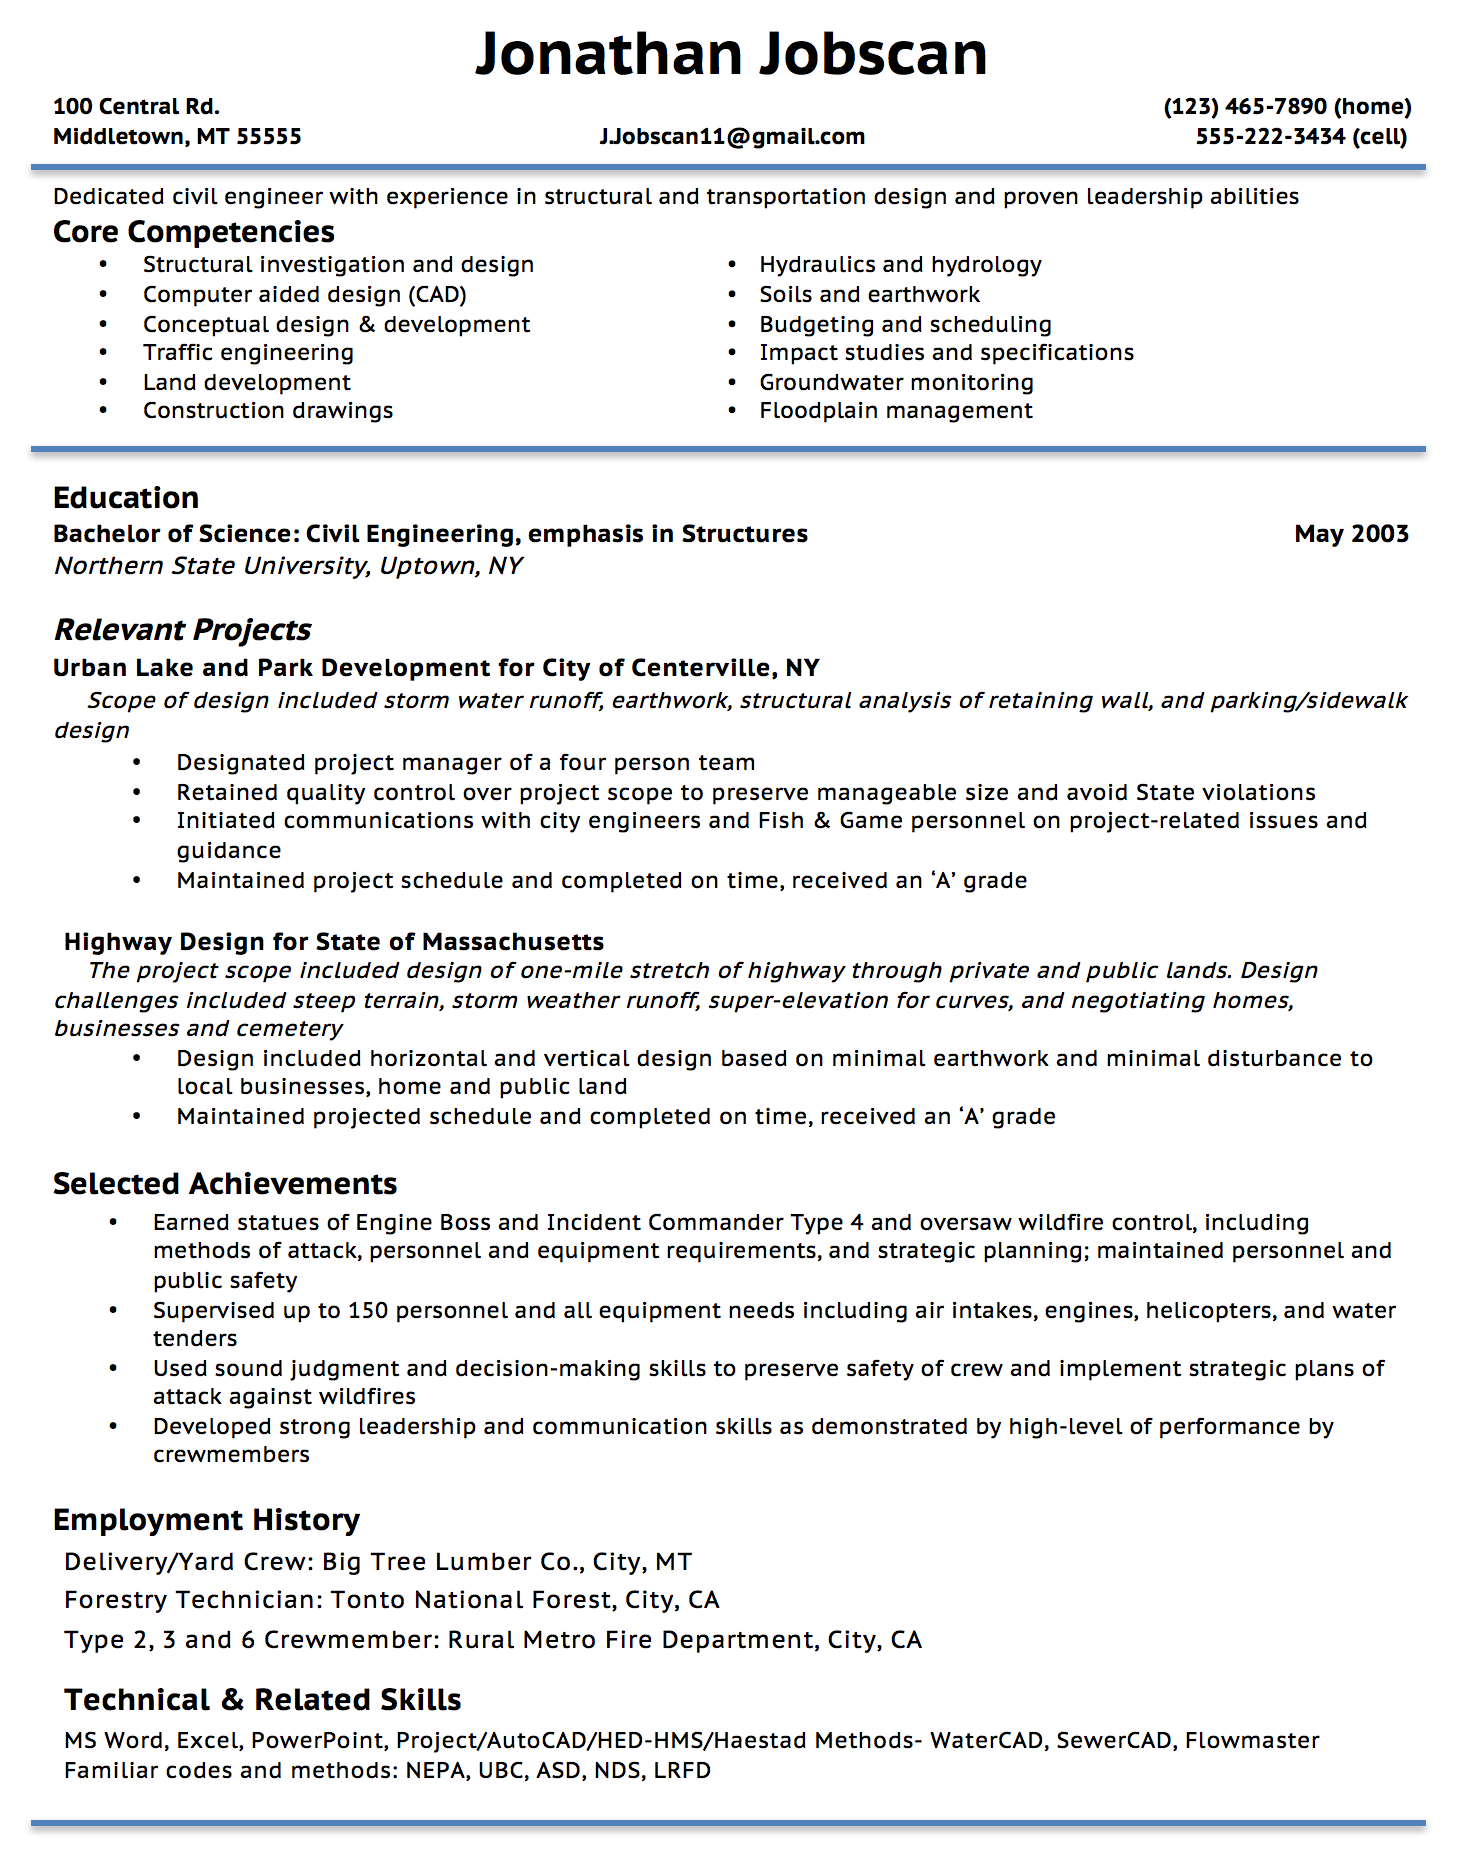 Picnictoimpeachus  Surprising Resume Writing Guide  Jobscan With Inspiring Example Of A Functional Resume Format With Cool Summary Of Qualifications Resume Also Administrative Assistant Resume Objective In Addition Indeed Resume Builder And Cfo Resume As Well As Write Resume Additionally Resume Objective Statement Example From Jobscanco With Picnictoimpeachus  Inspiring Resume Writing Guide  Jobscan With Cool Example Of A Functional Resume Format And Surprising Summary Of Qualifications Resume Also Administrative Assistant Resume Objective In Addition Indeed Resume Builder From Jobscanco